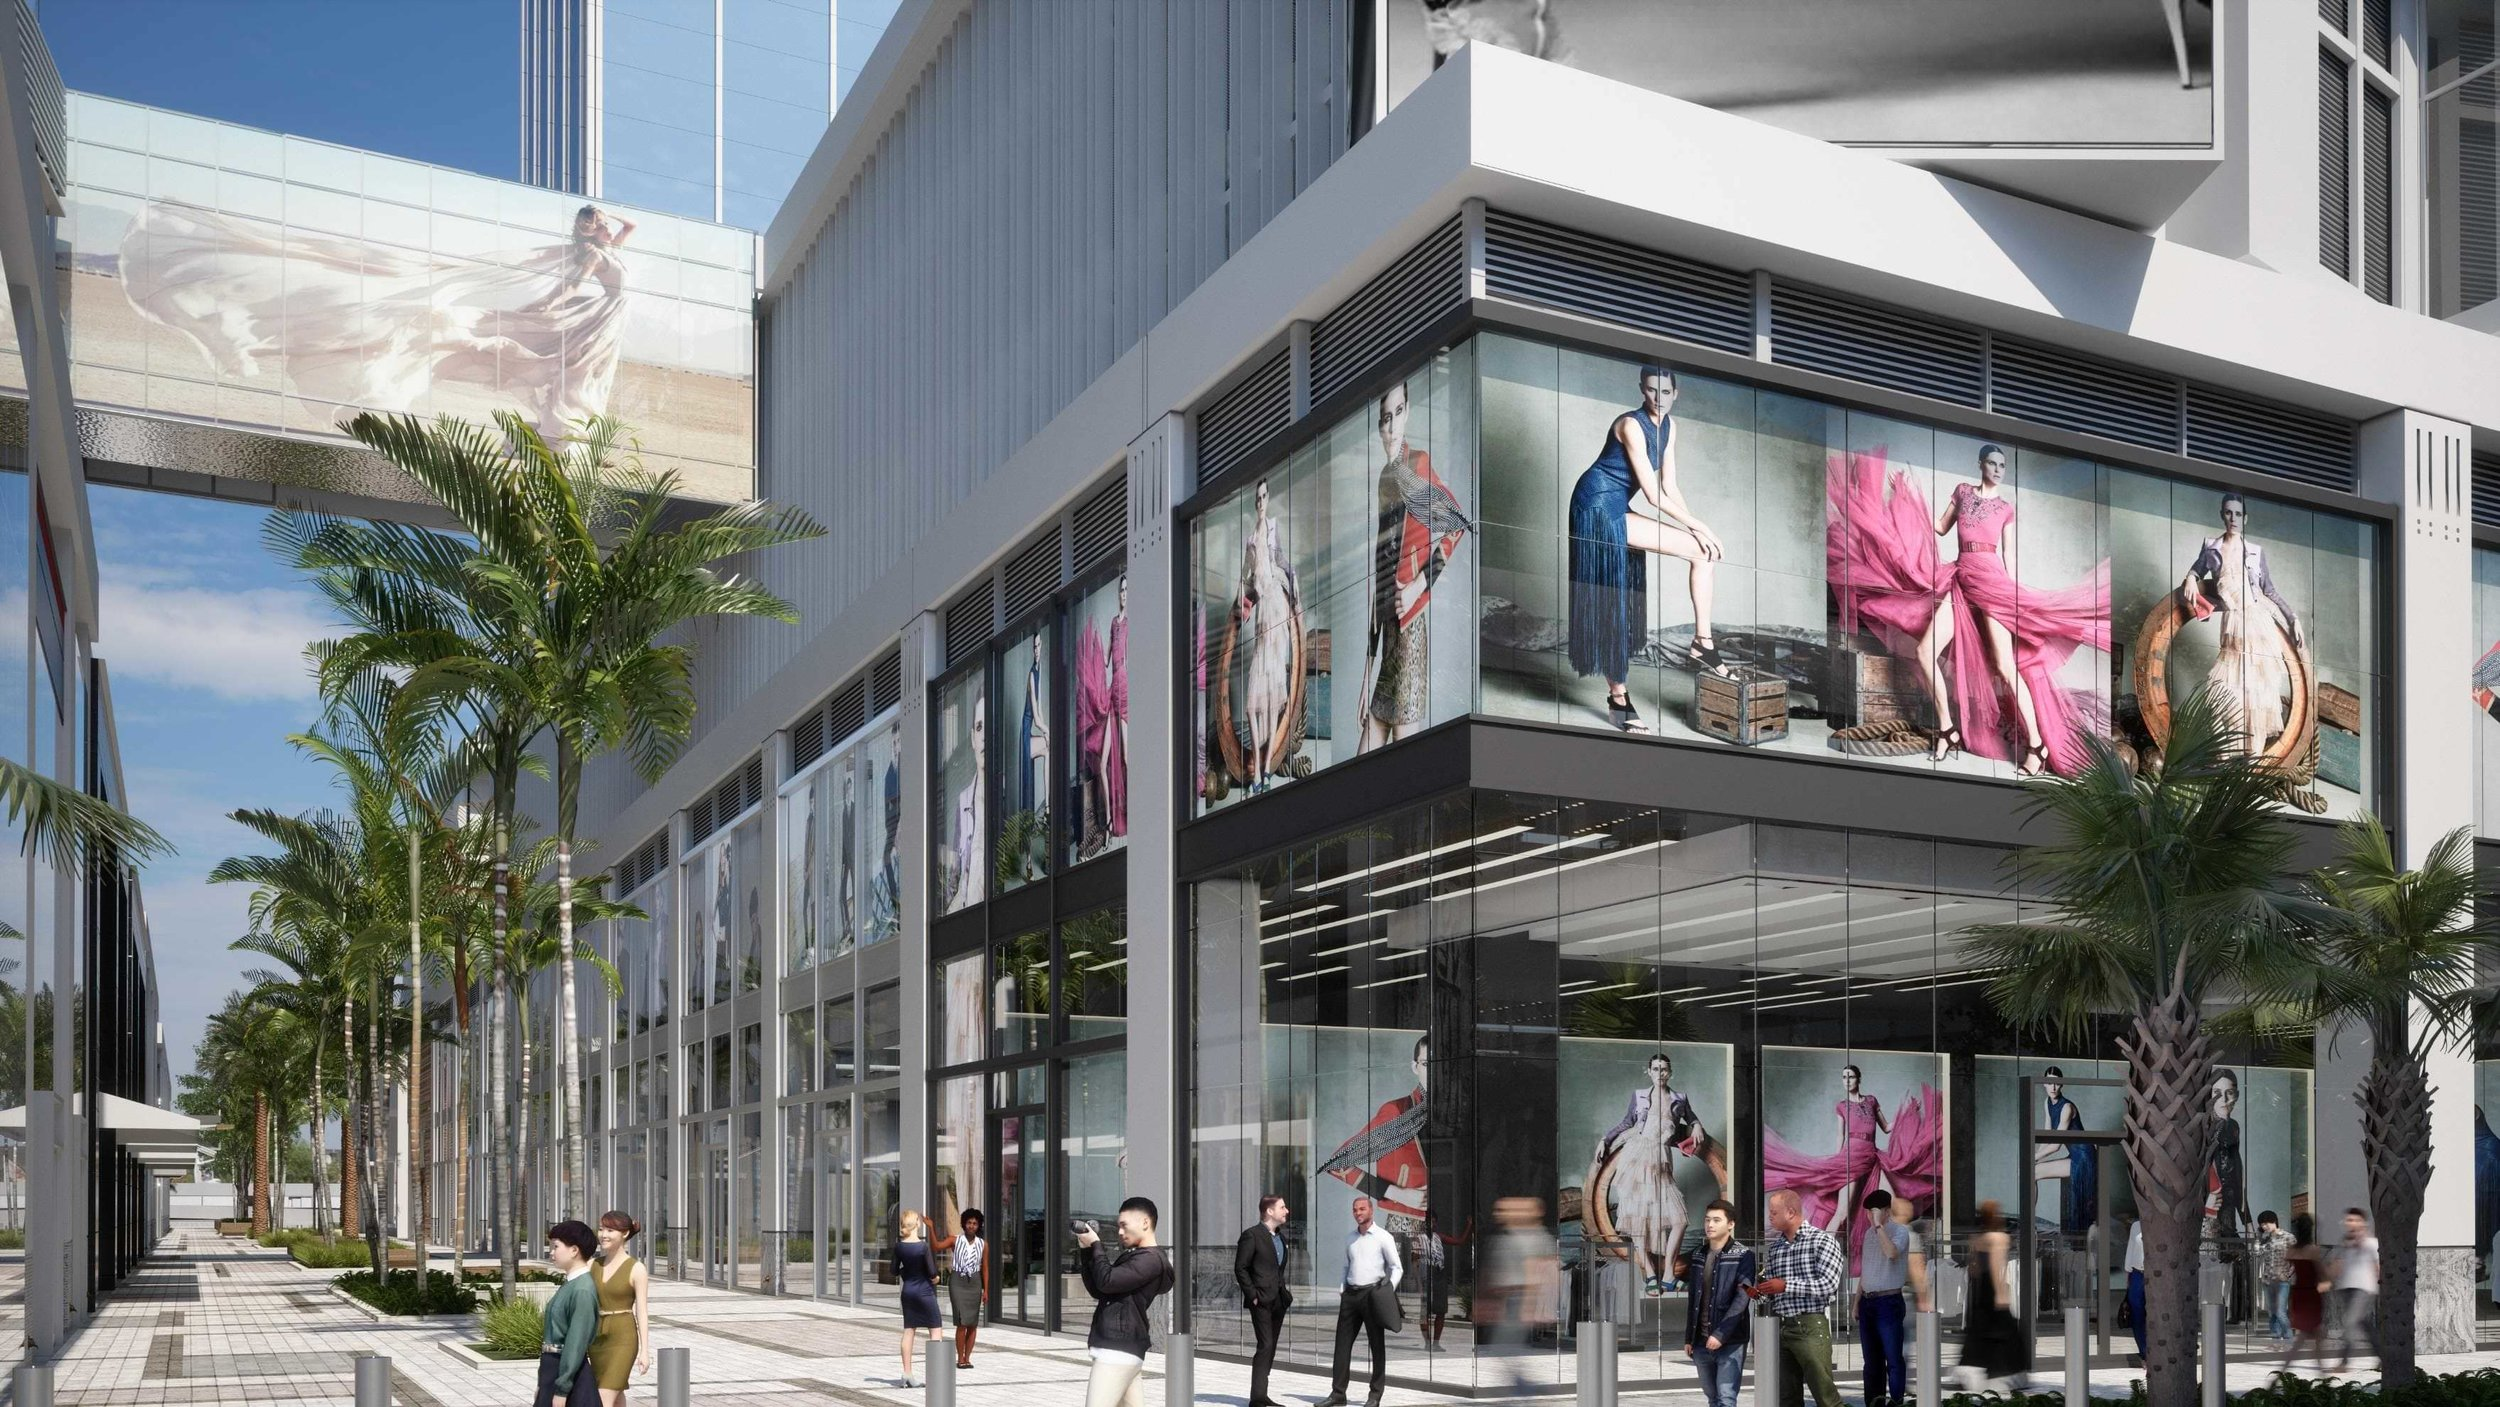 The Comras Company Tabbed To Lease 300K+ Square Feet Of Retail At Miami Worldcenter